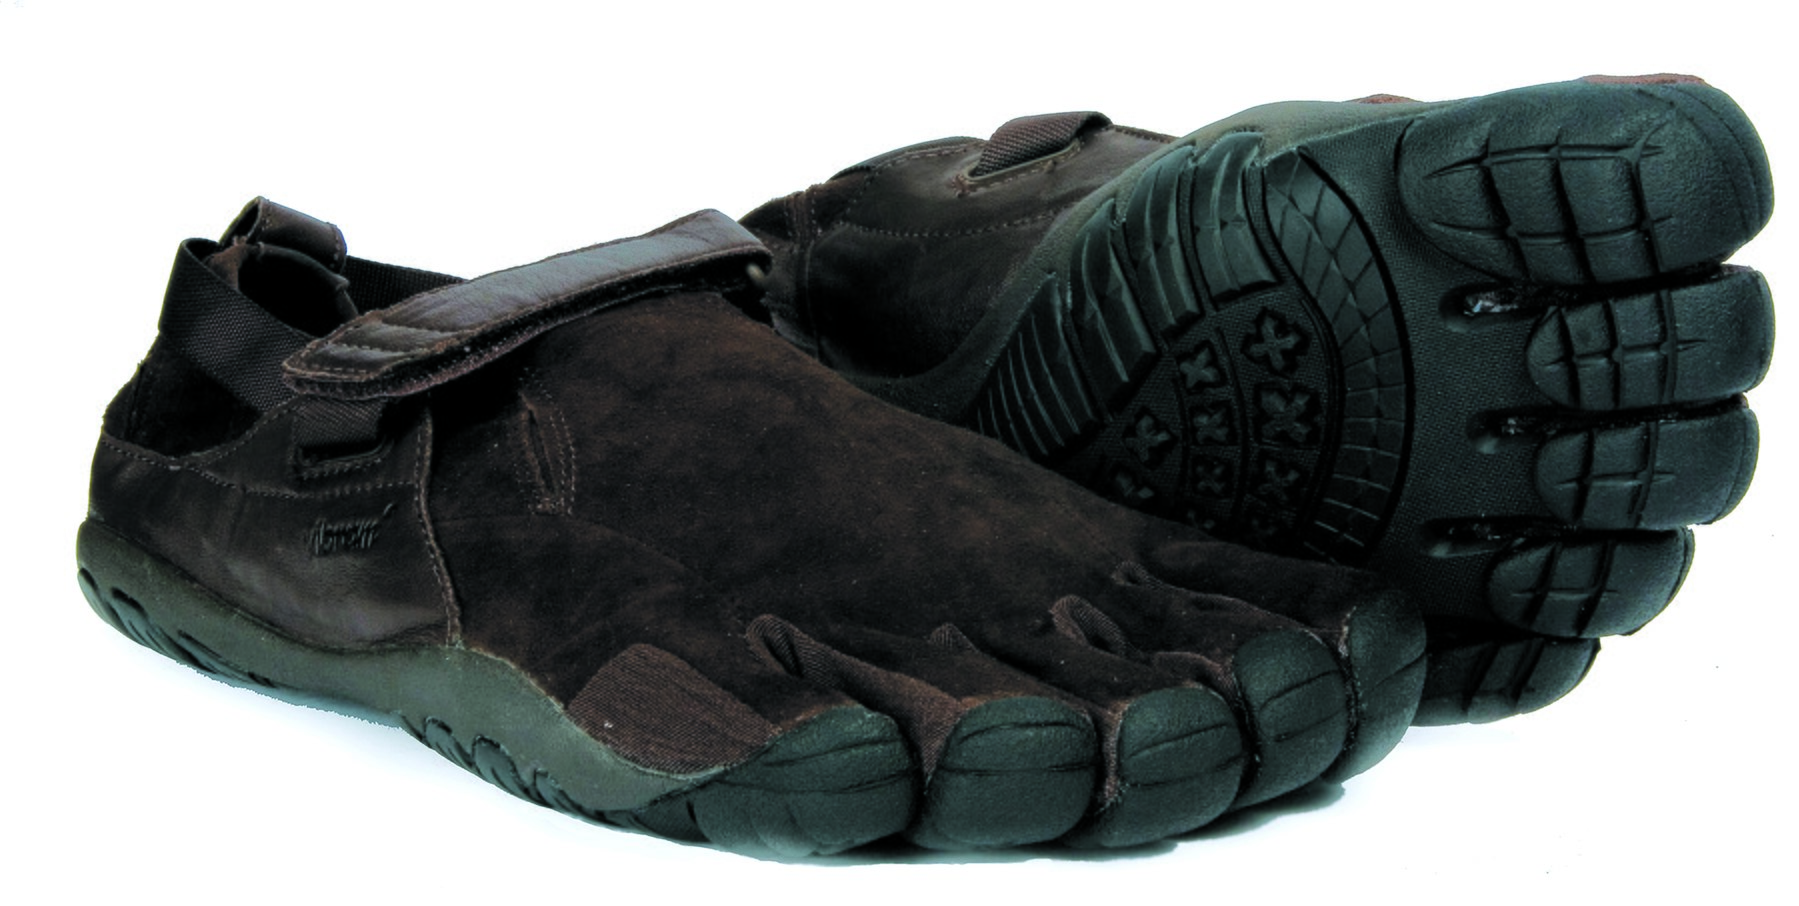 0f3857ef753b Vibram FiveFingers - The complete information and online sale with free  shipping. Order and buy now for the lowest price in the best online store!